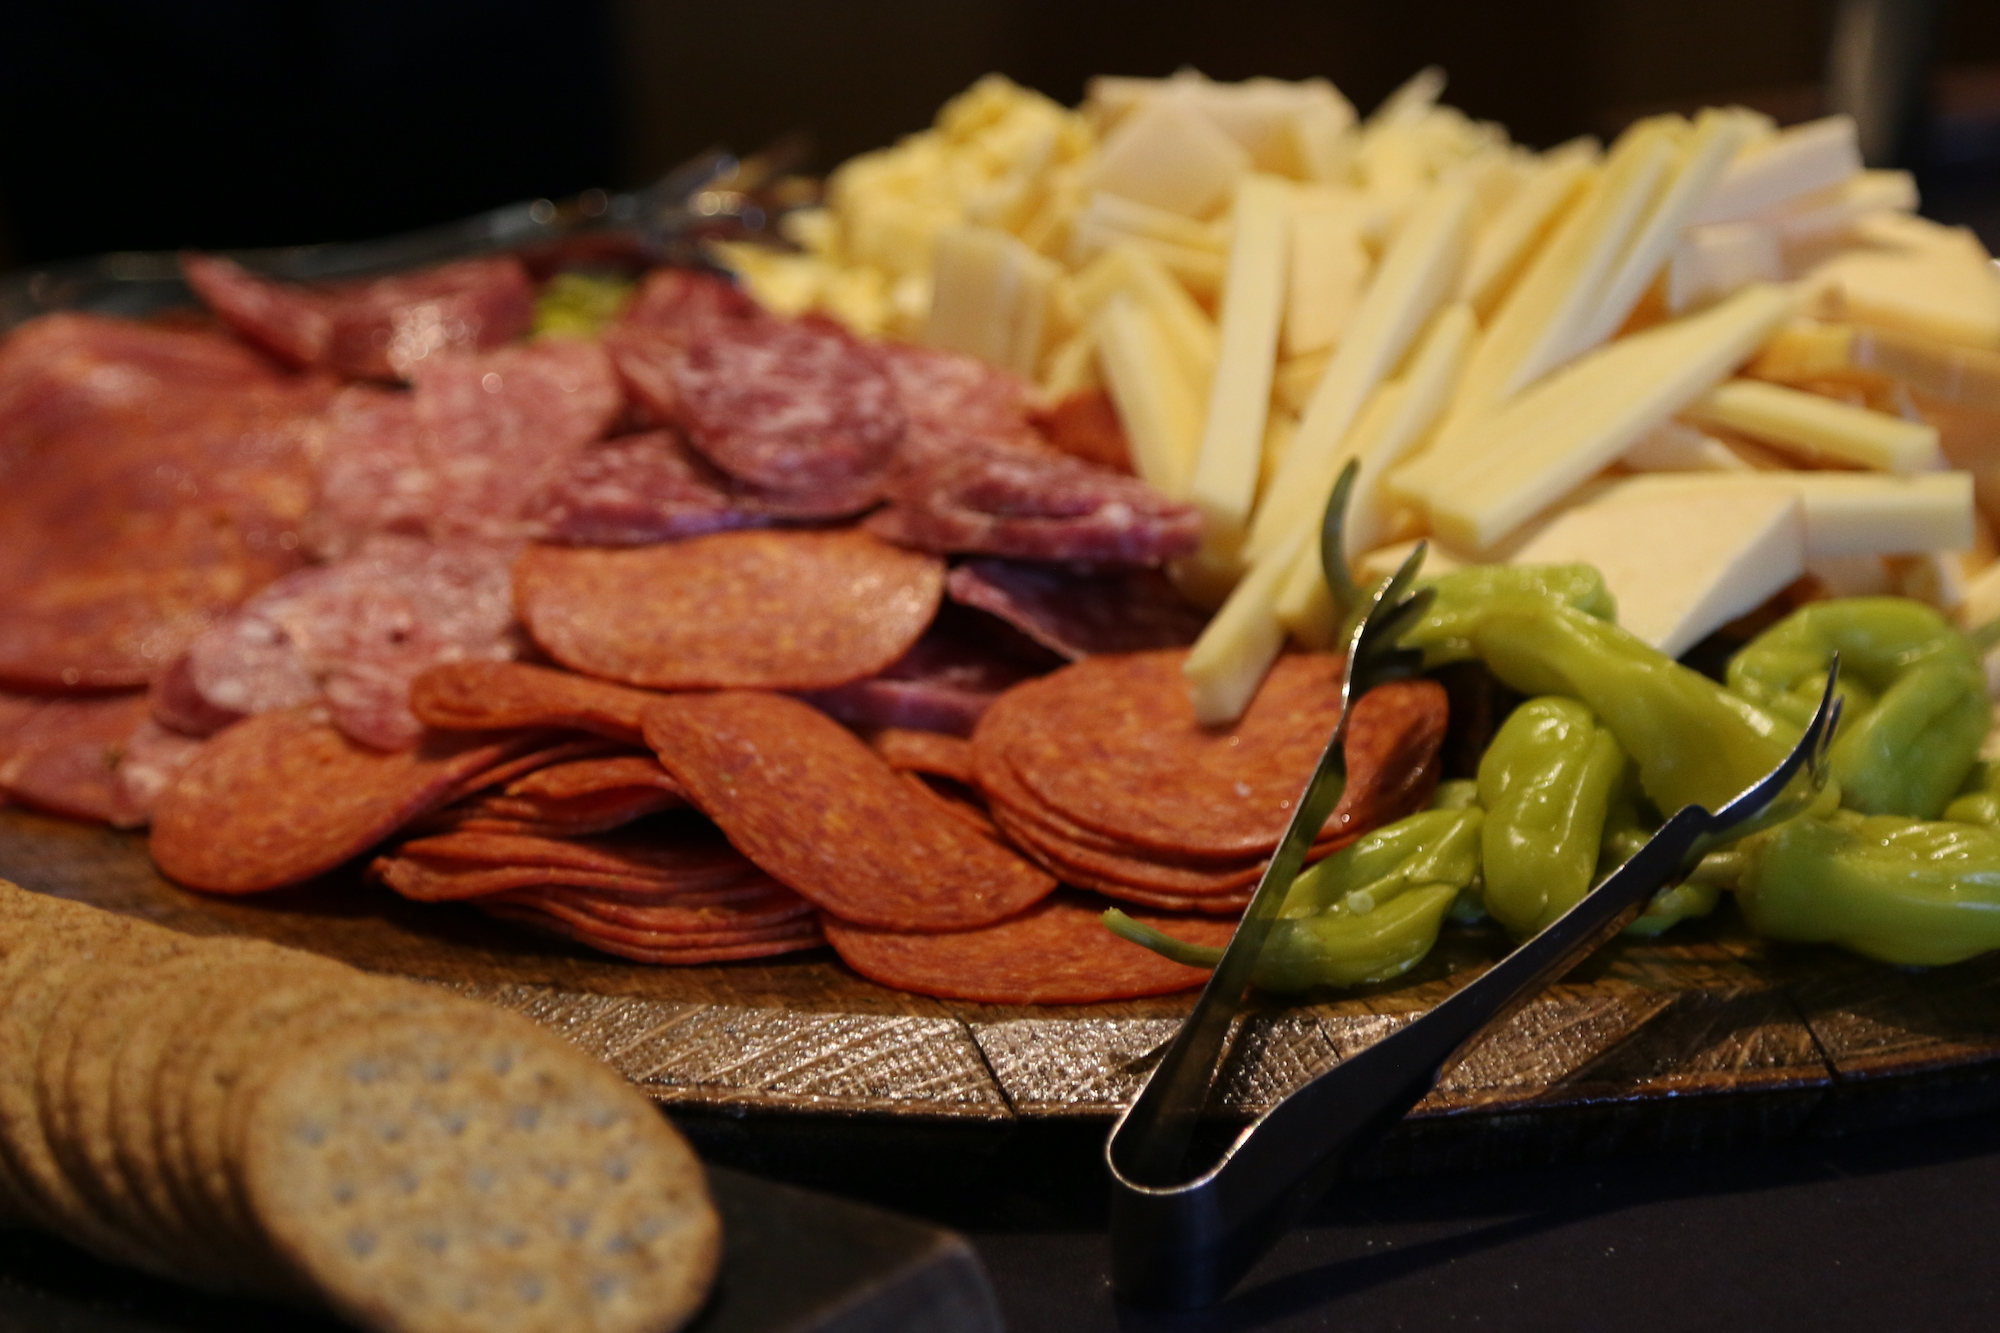 Charcuterie board with meats, cheeses, crackers, peppers